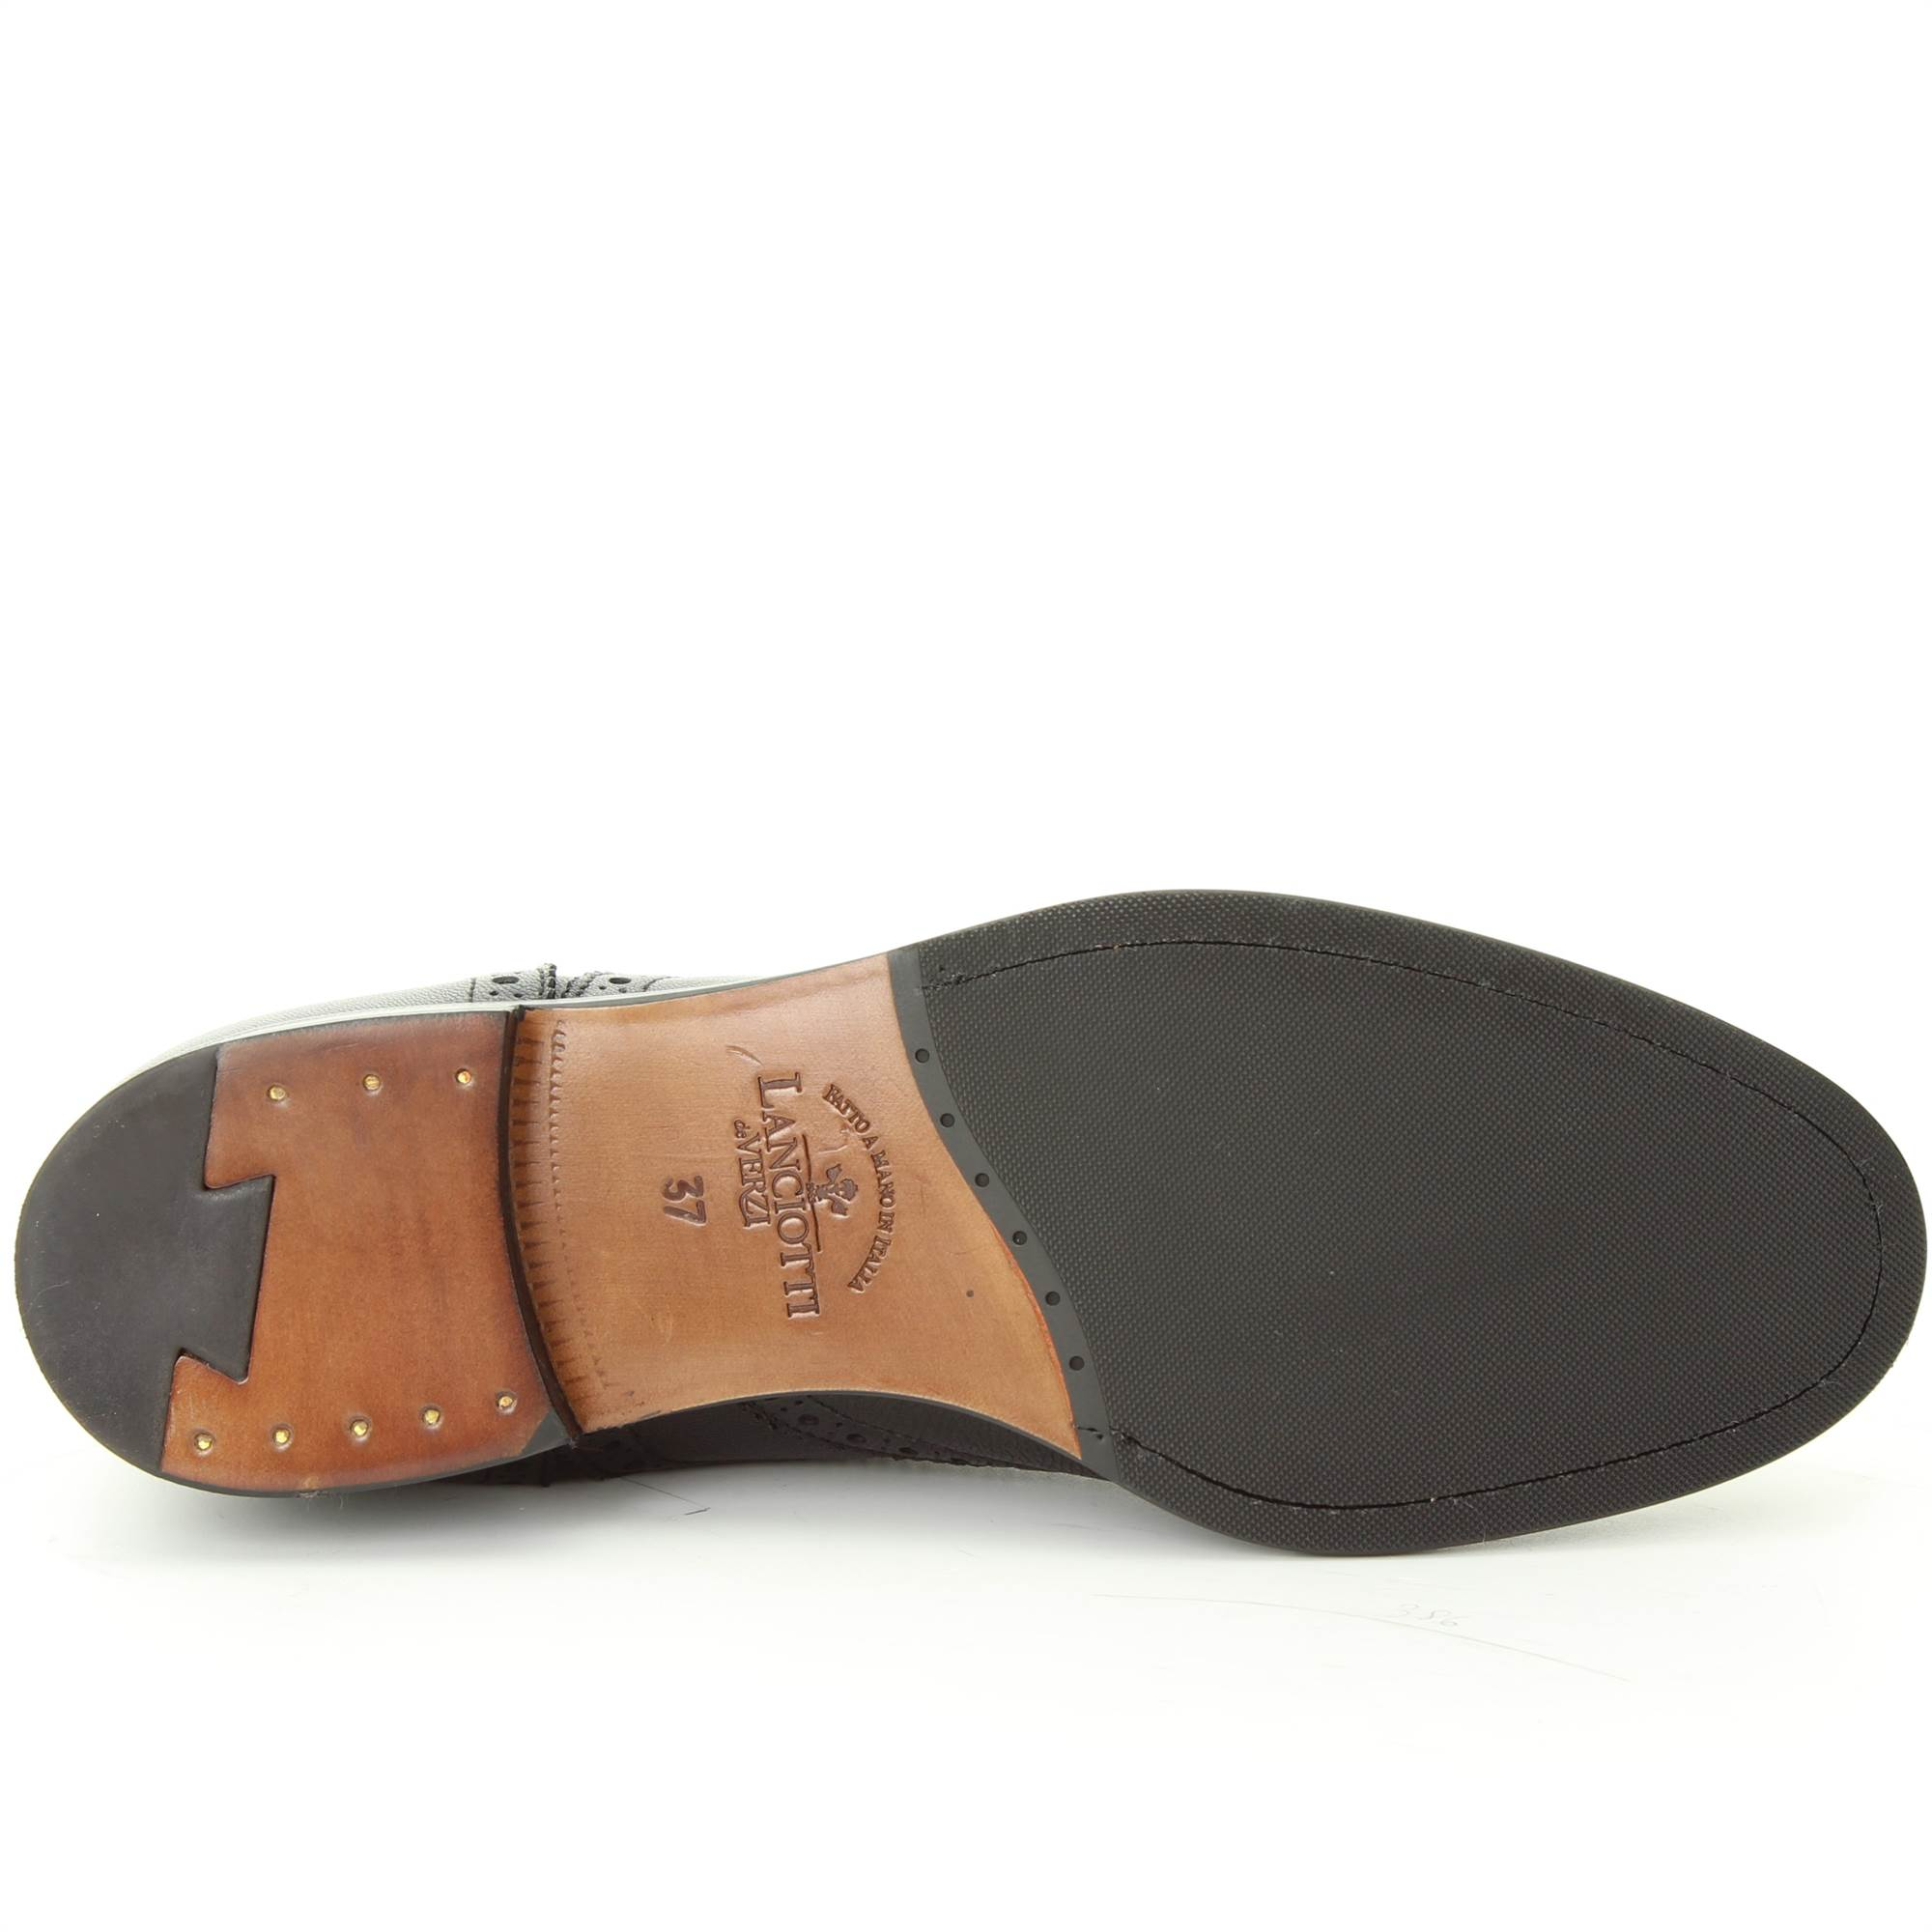 LANCIOTTI DE VERZI 695P NERO Shoes Woman beatles